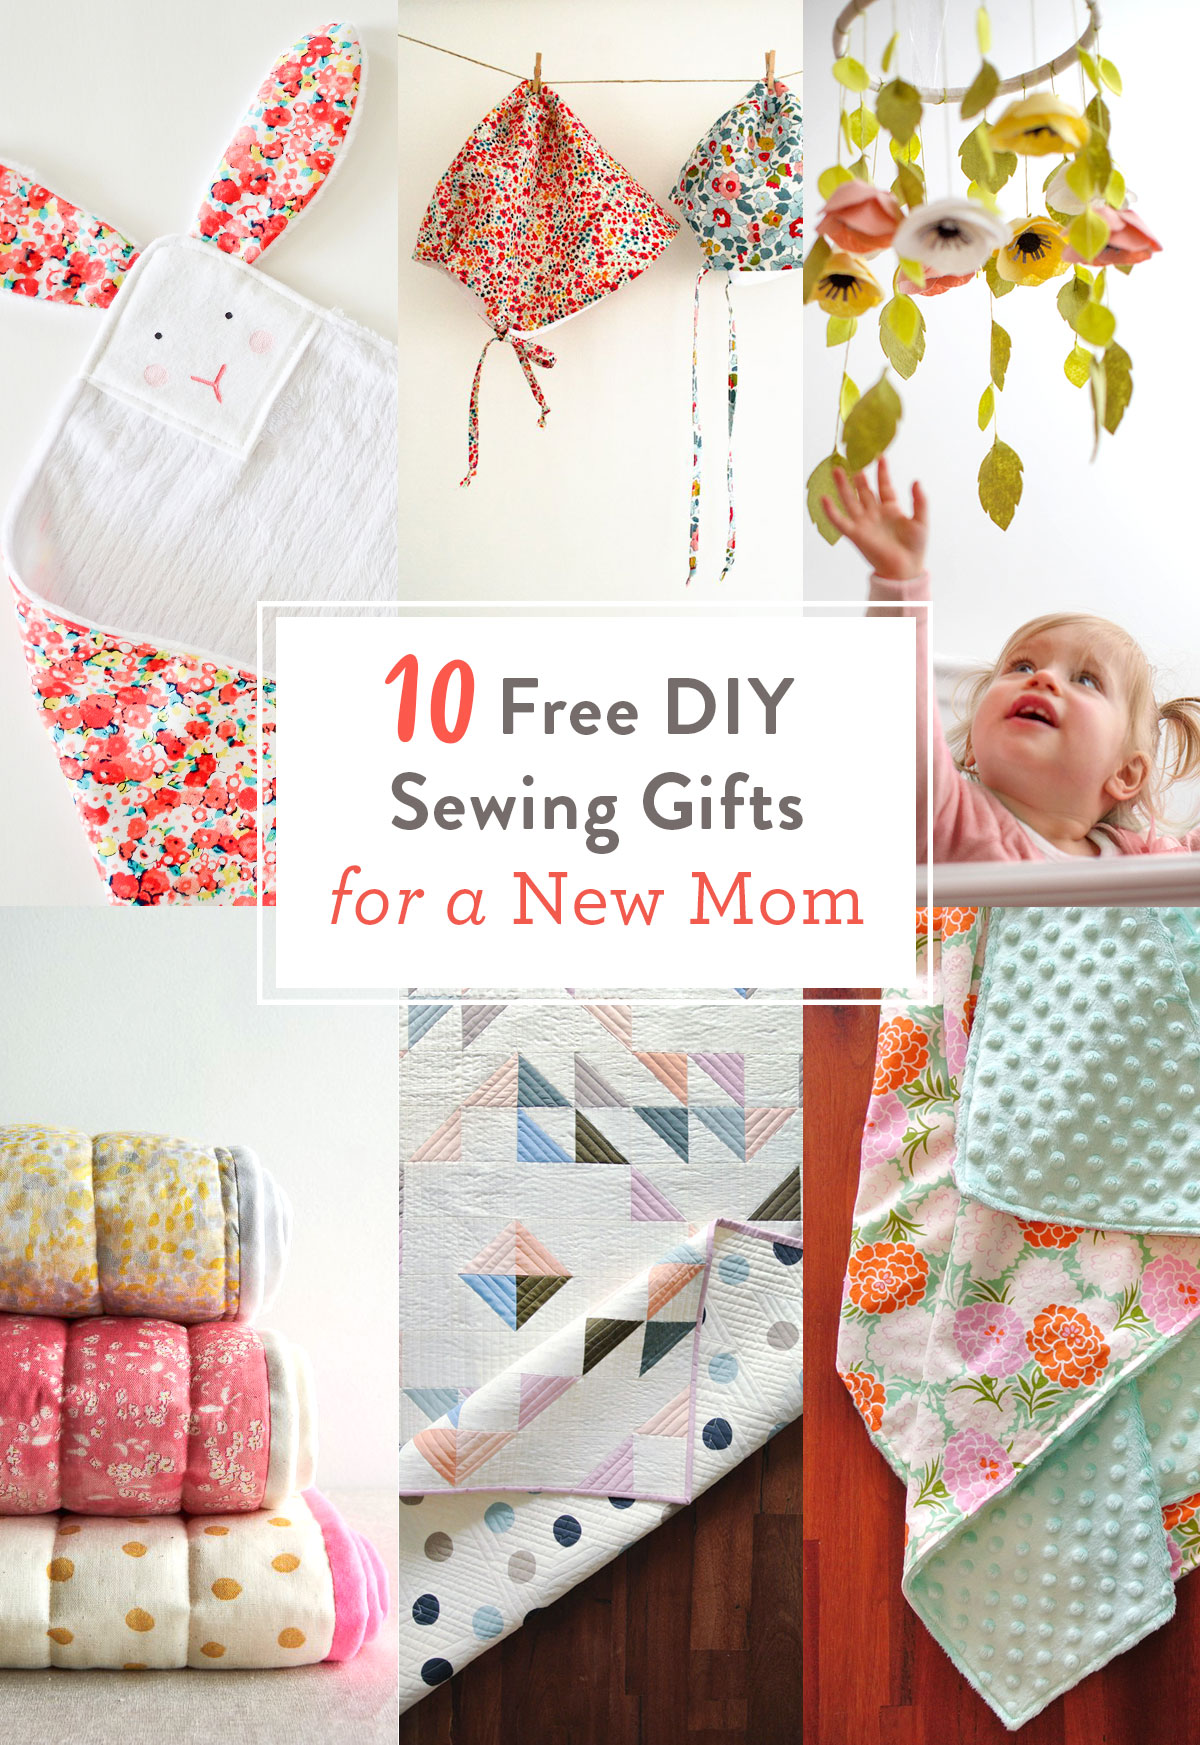 10 Free DIY Sewing Gifts for a New Mom | Suzy Quilts https://suzyquilts.com/free-diy-sewing-gifts-new-mom